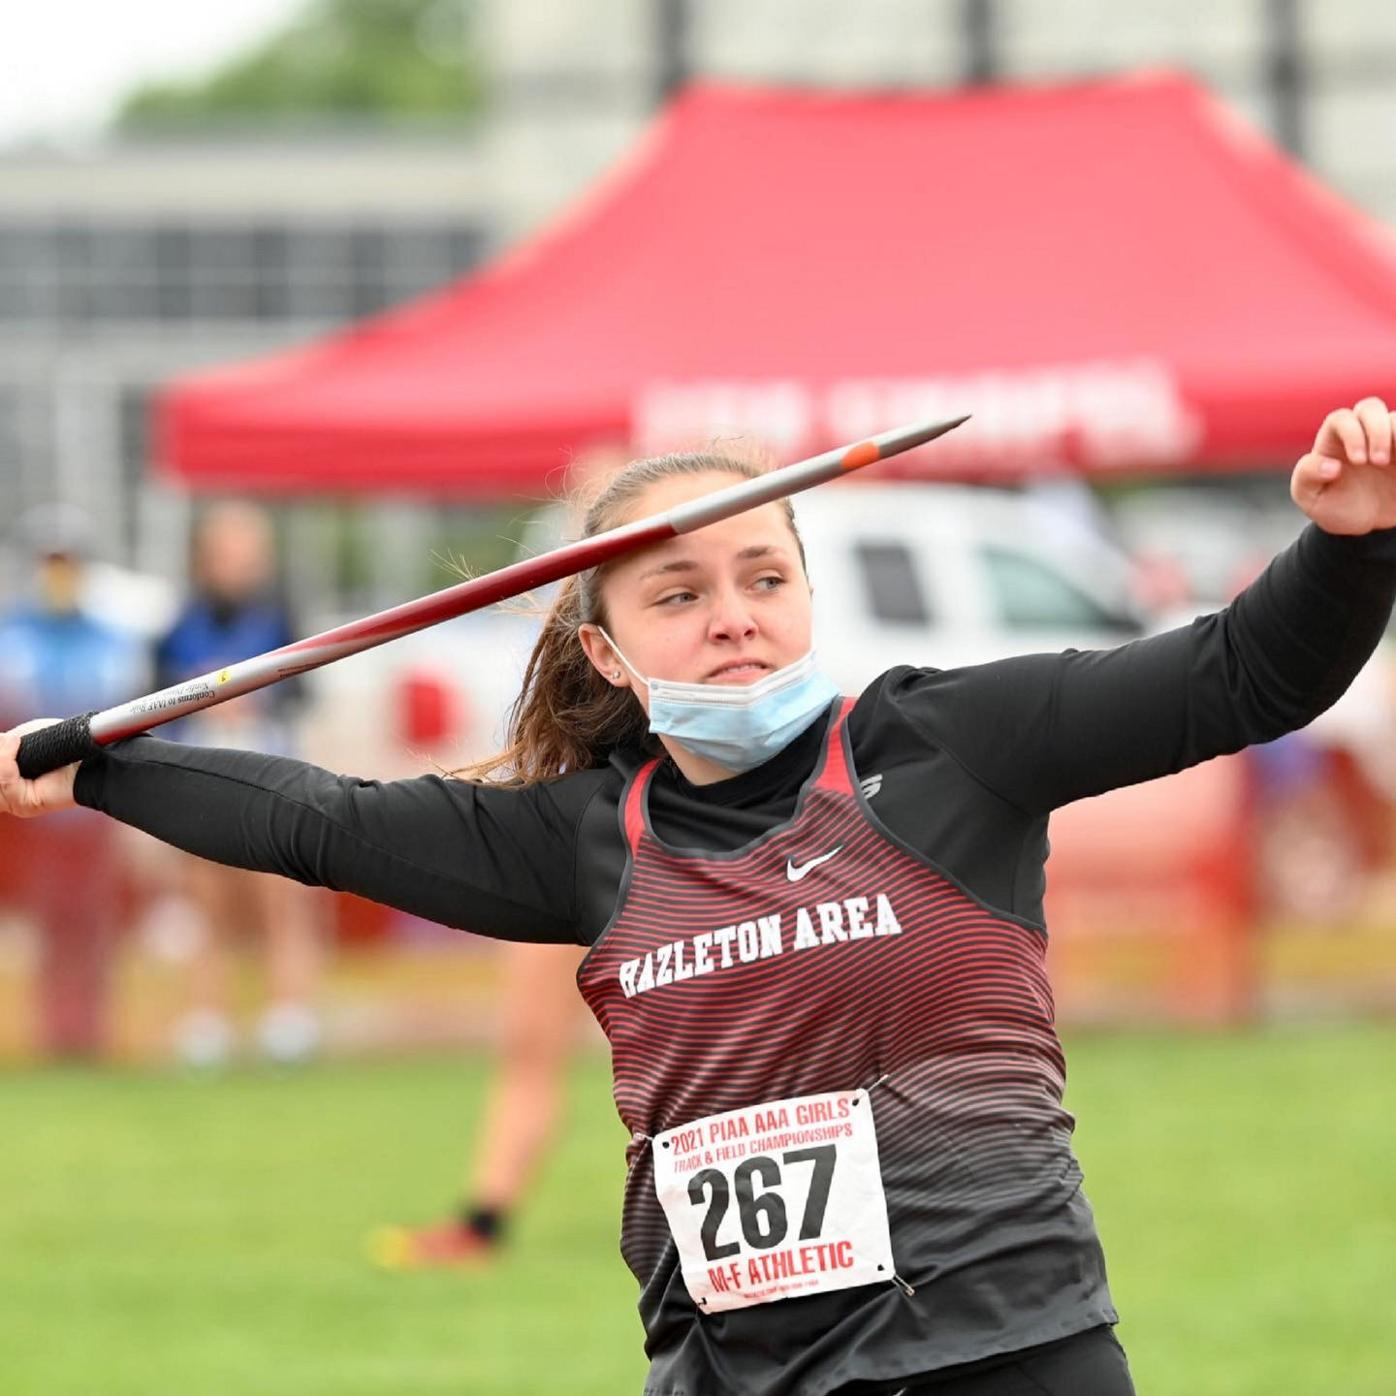 PIAA TRACK AND FIELD: Lady Cougars' Hengst captures gold in javelin